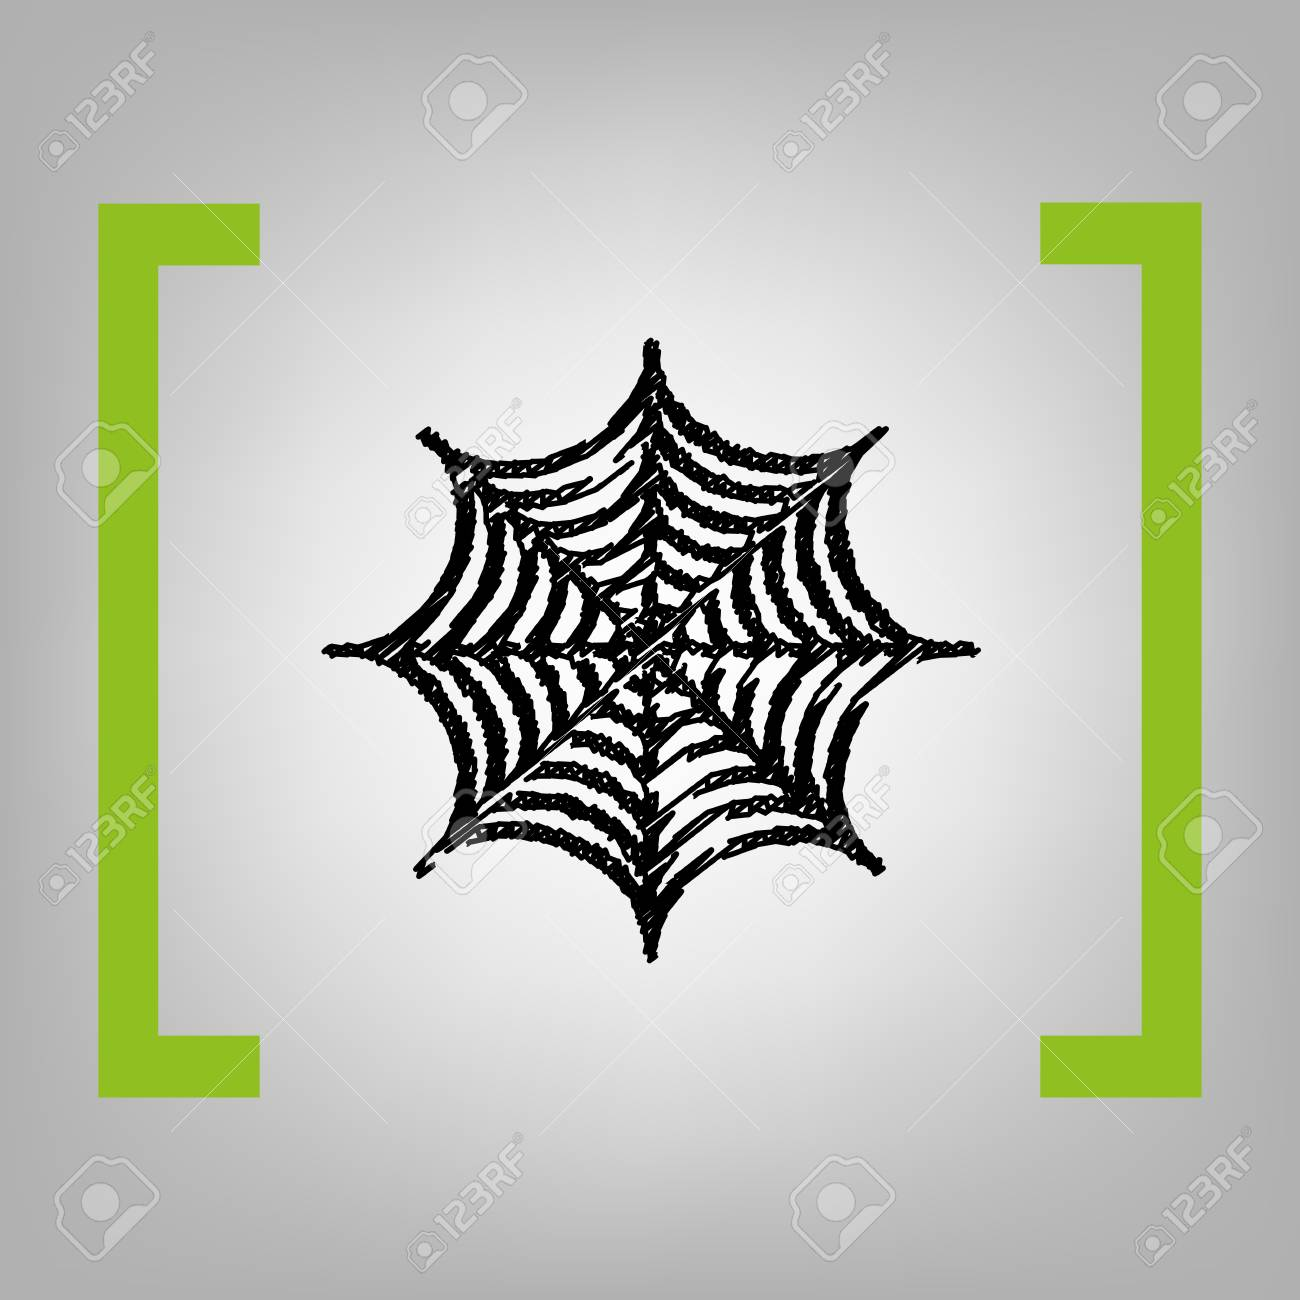 1300x1300 Spider On Web Illustration. Vector. Black Scribble Icon In Citron